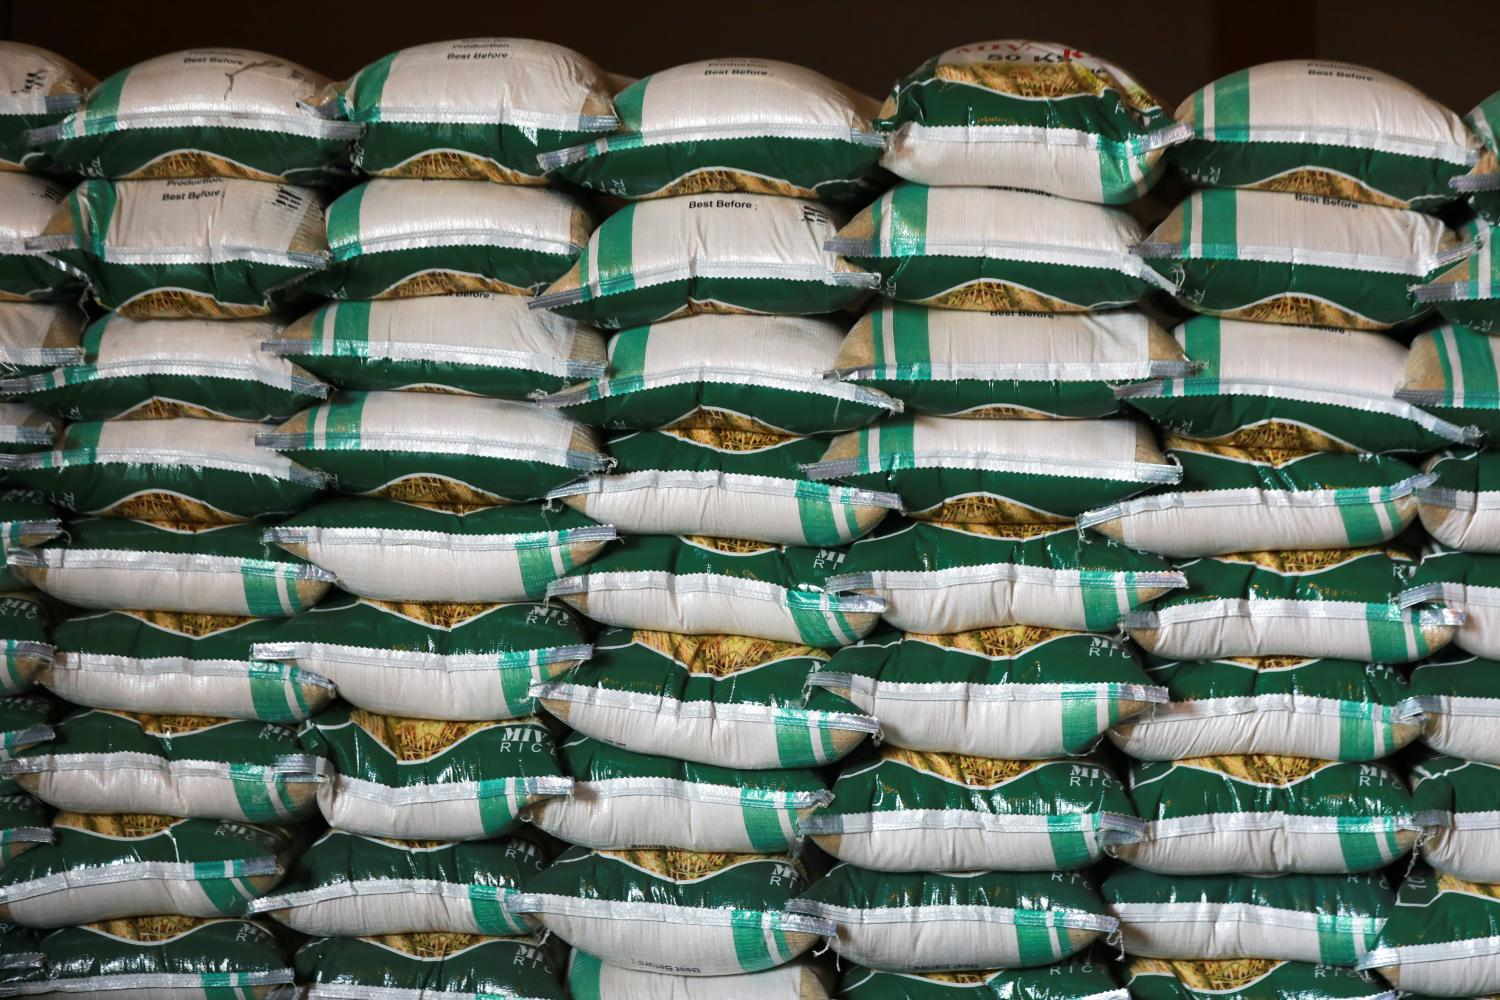 Bags of processed rice are seen arranged inside a warehouse in Benue, Nigeria. (Reuters photo)